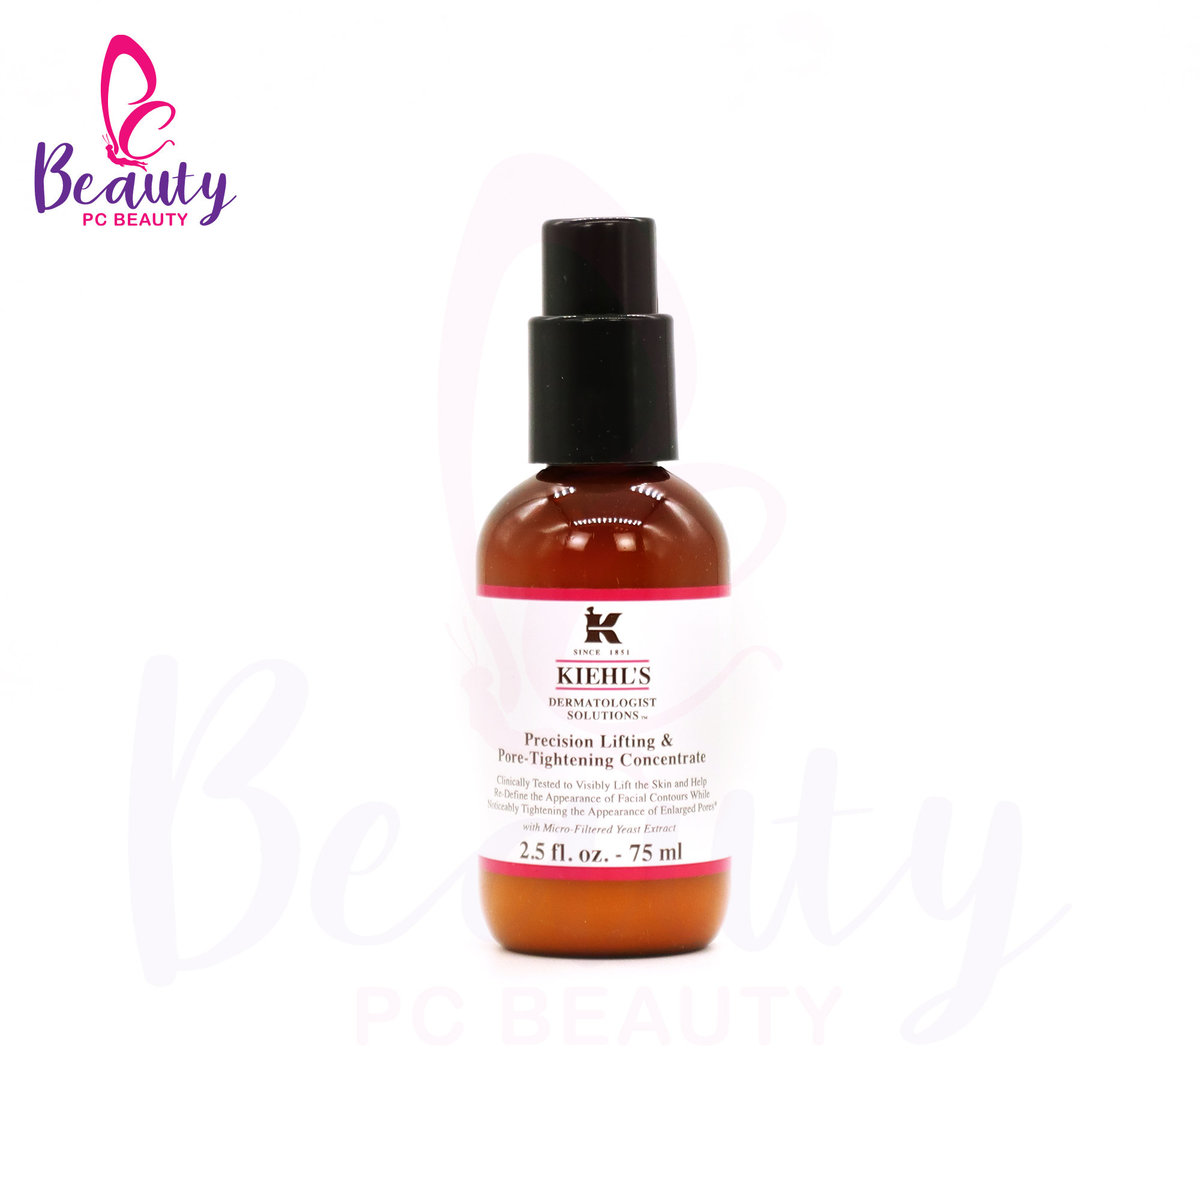 KIEHL'S PRECISION LIFTING & PORE-TIGHTENING CONCENTRATE 75ML [Parallel Import Product]